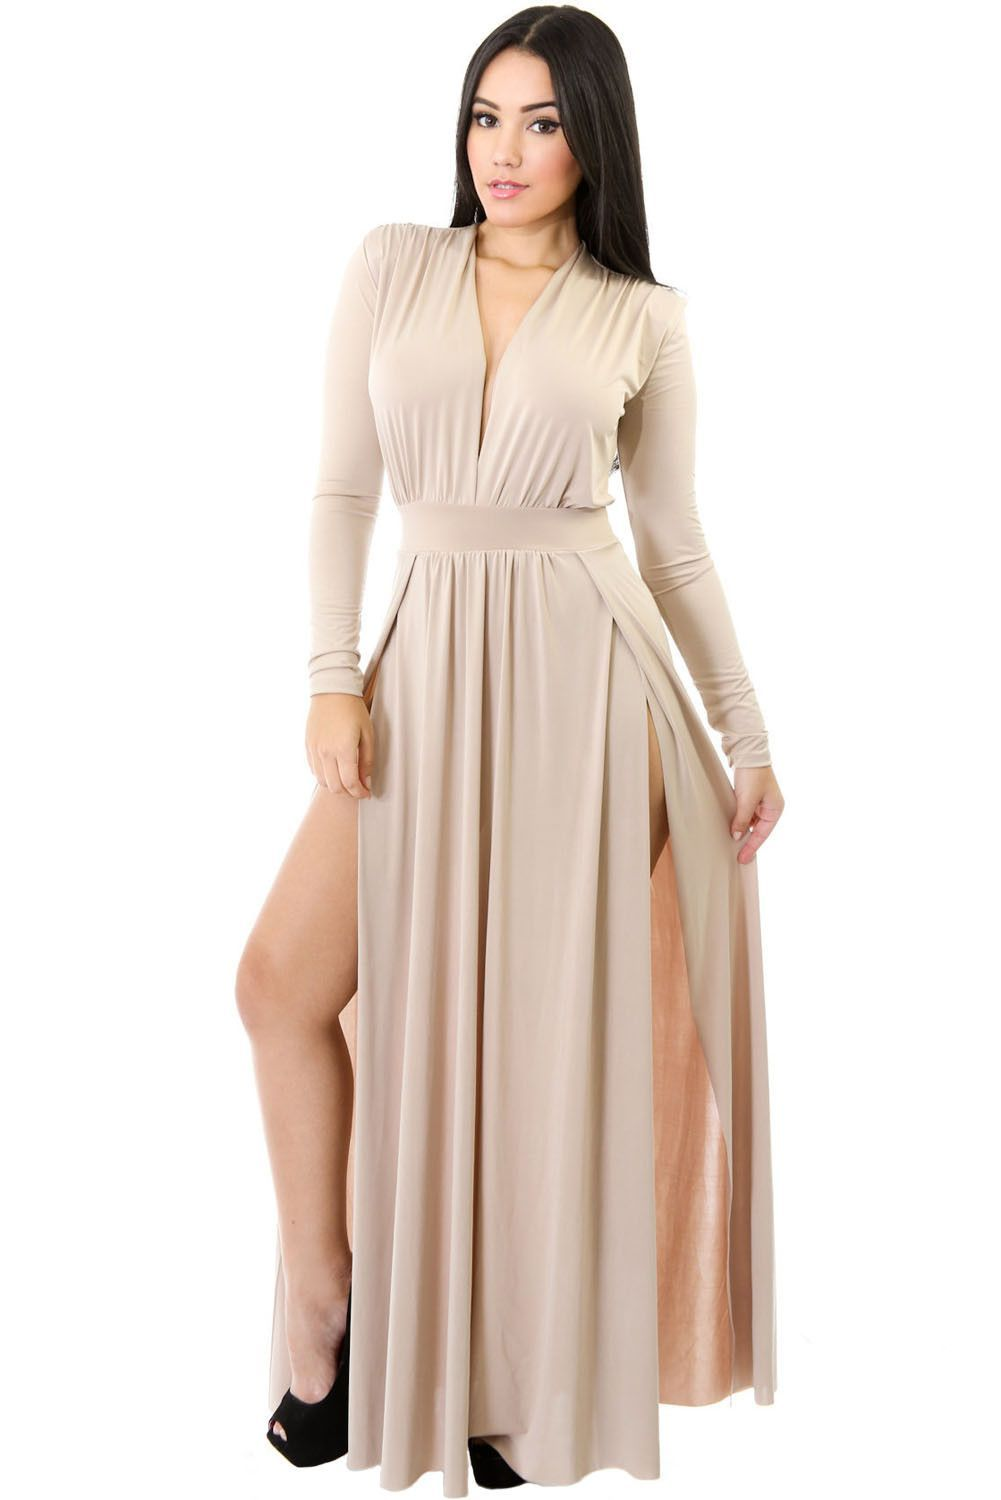 dda04f8d345 Robes Maxi Longue Abricot Super Chic Manches Longues Double Fendu Pas Cher  www.modebuy.com  Modebuy  Modebuy  Abricot  mode  me  gros